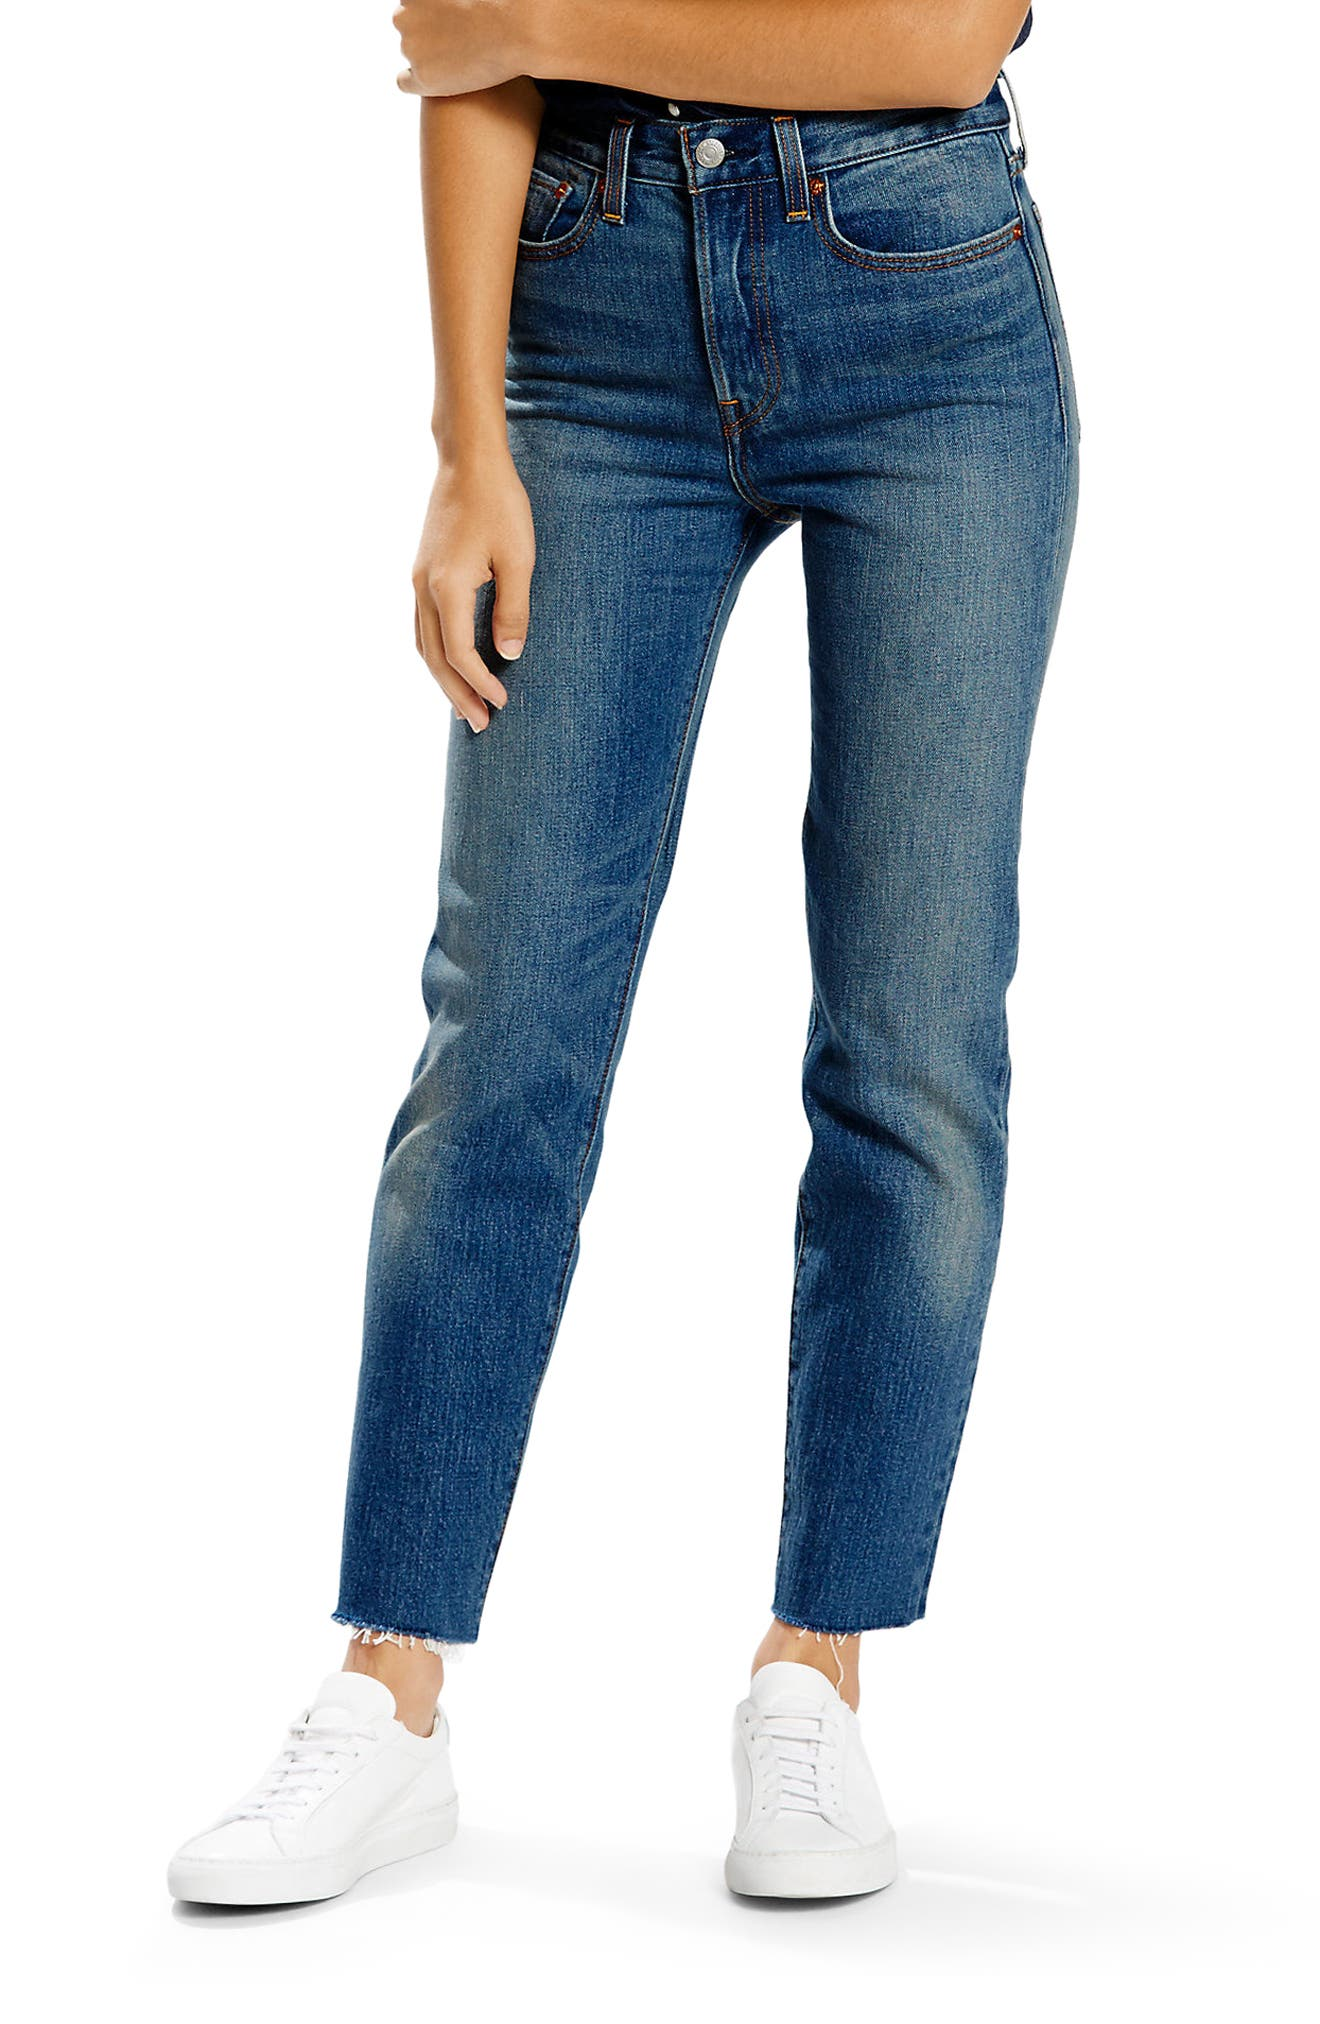 Wedgie High Waist Straight Jeans,                         Main,                         color, 400